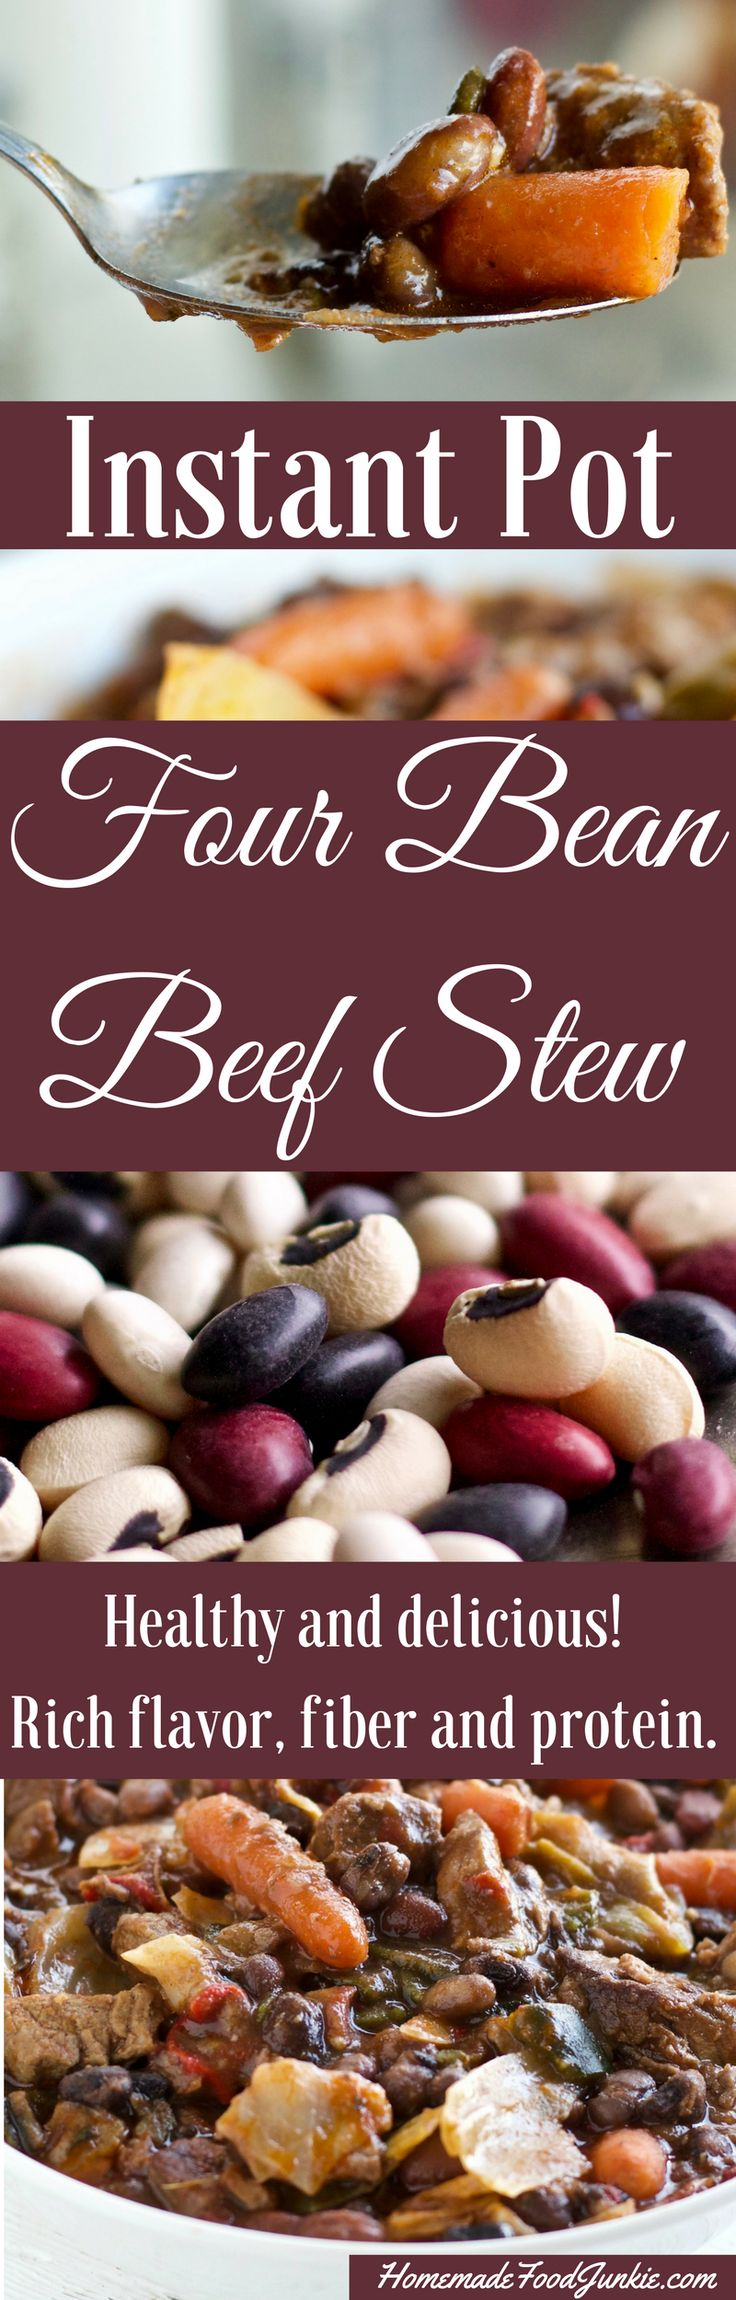 Instant Pot Four Bean Beef Stew is made with healthy dried beans, beef and vegetables. Outstanding flavorful one pot meal